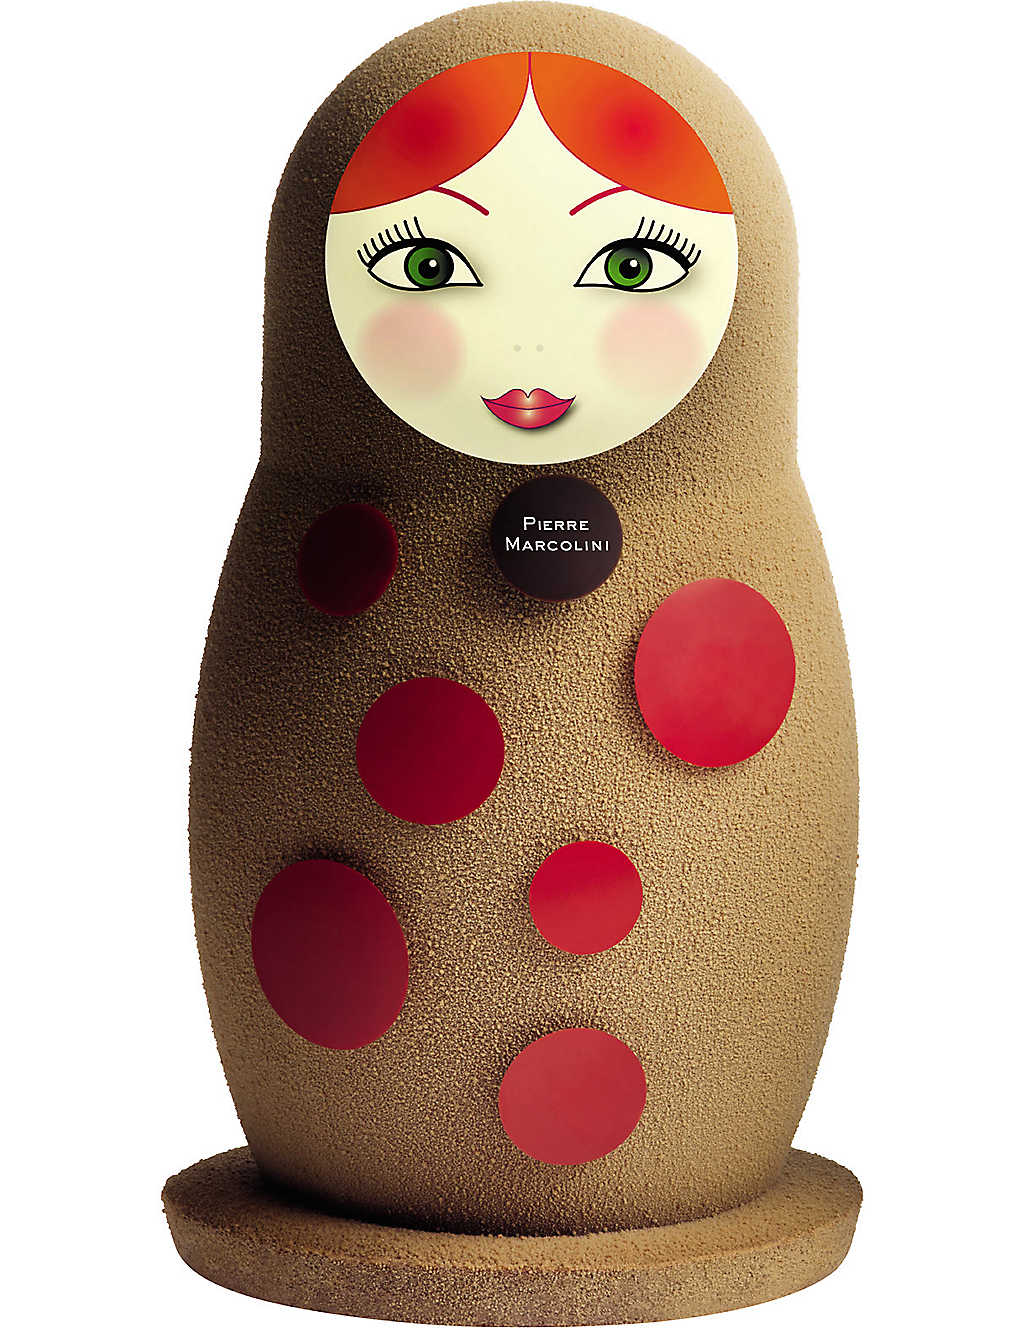 Pierre marcolini milk chocolate easter dolls 500g selfridges no recent searches negle Gallery